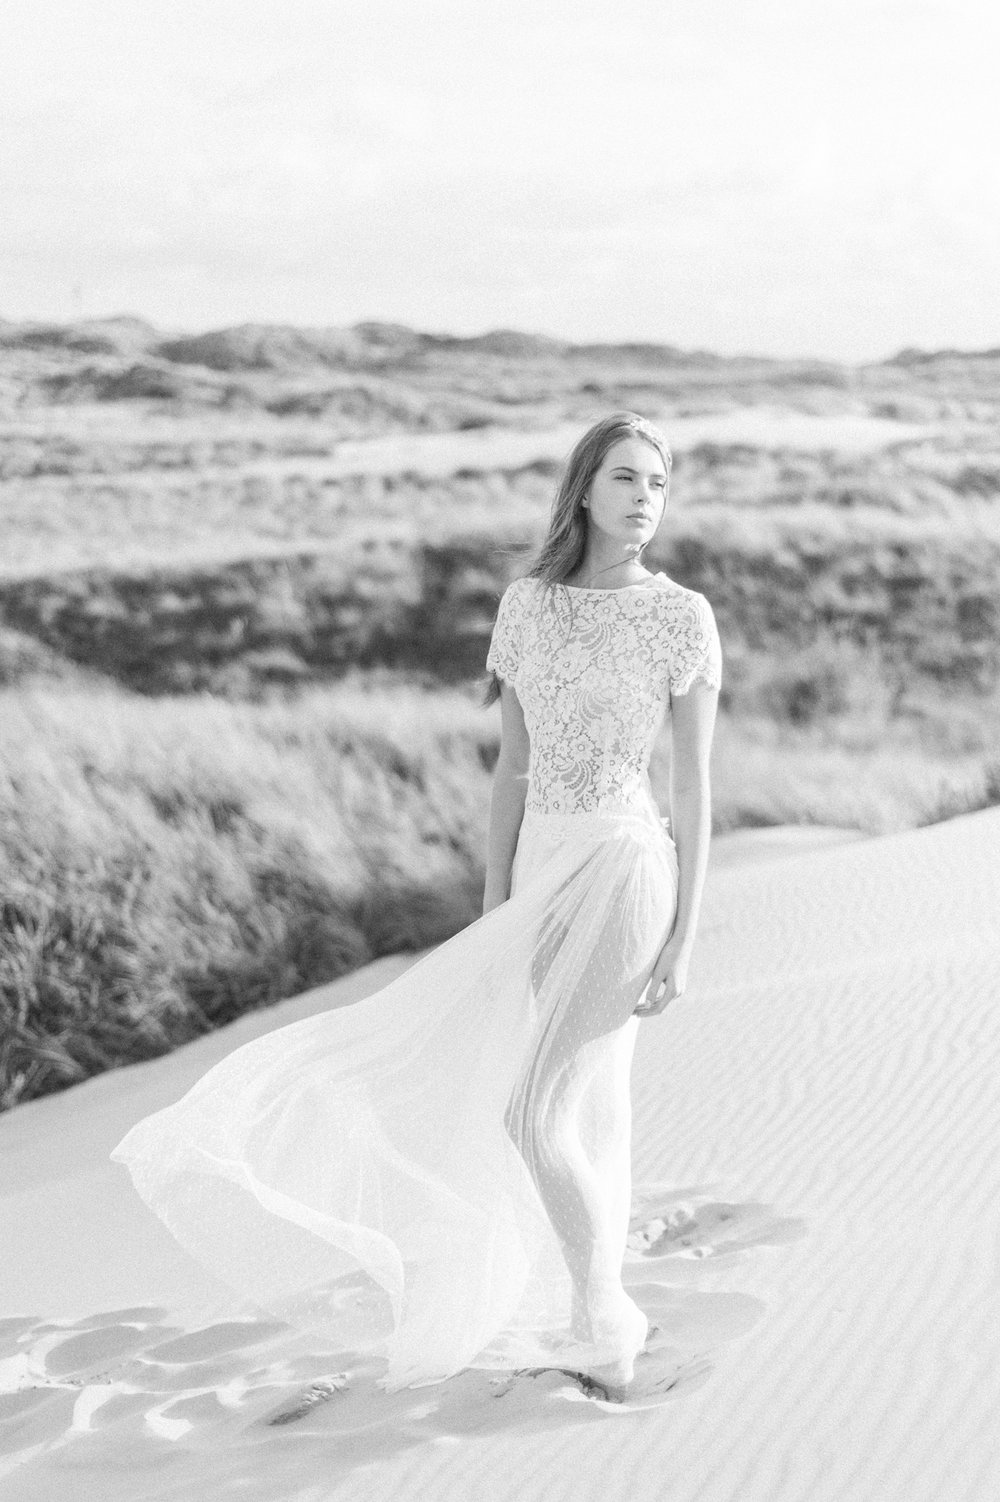 Kate-Beaumont-Wedding-Dresses-Formby-Beach-Emma-Pilkington-14.jpg